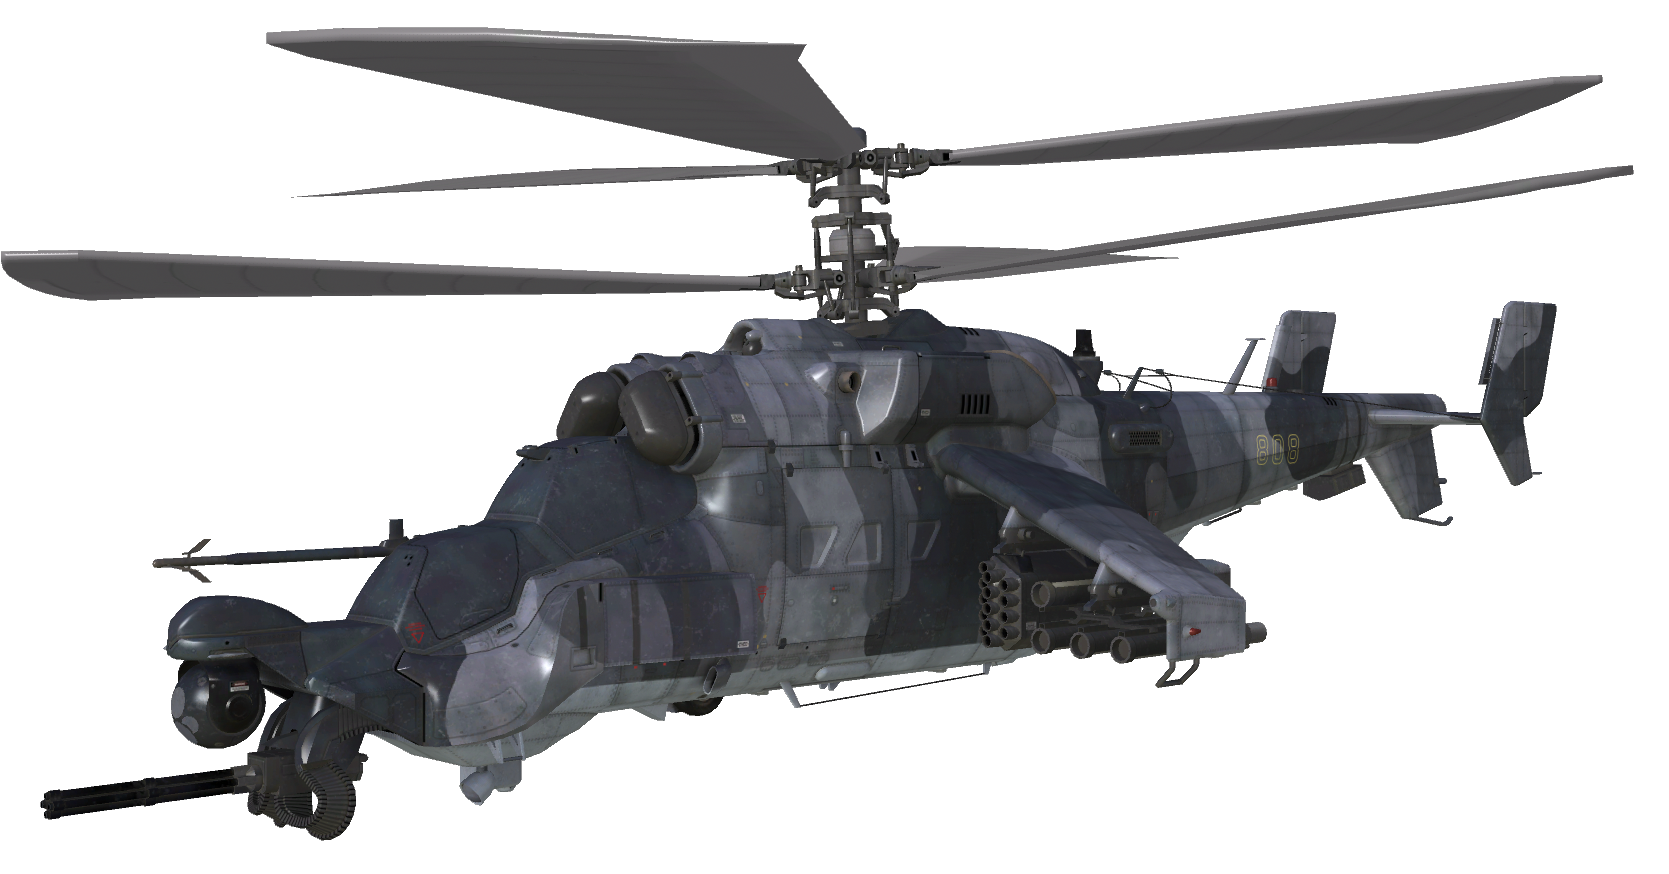 Coaxial Hind from Call of Duty:Ghosts image - Aircraft Lovers Group